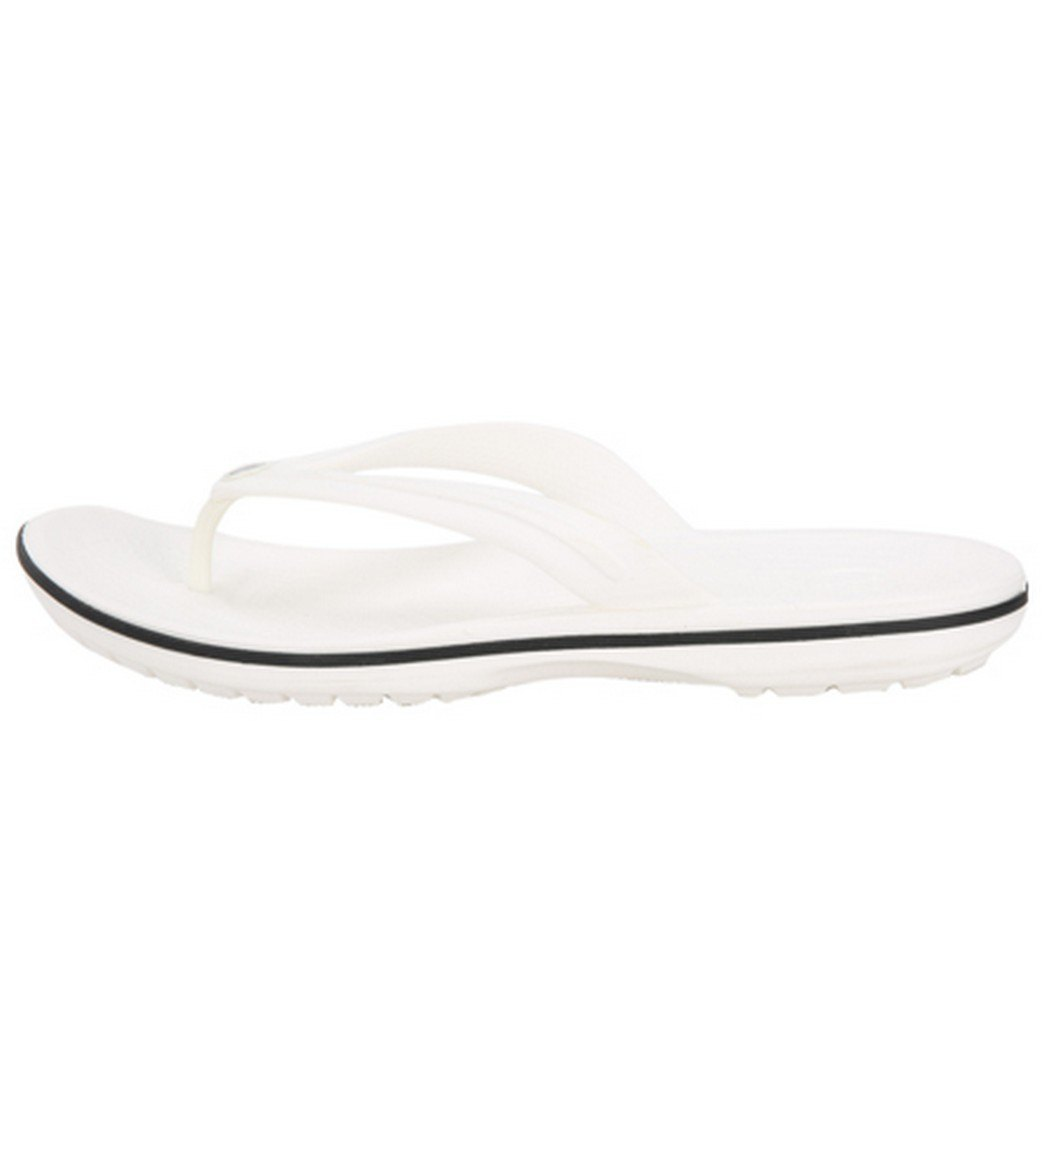 4106f5df28695 Crocs Crocband Flip Flop at SwimOutlet.com